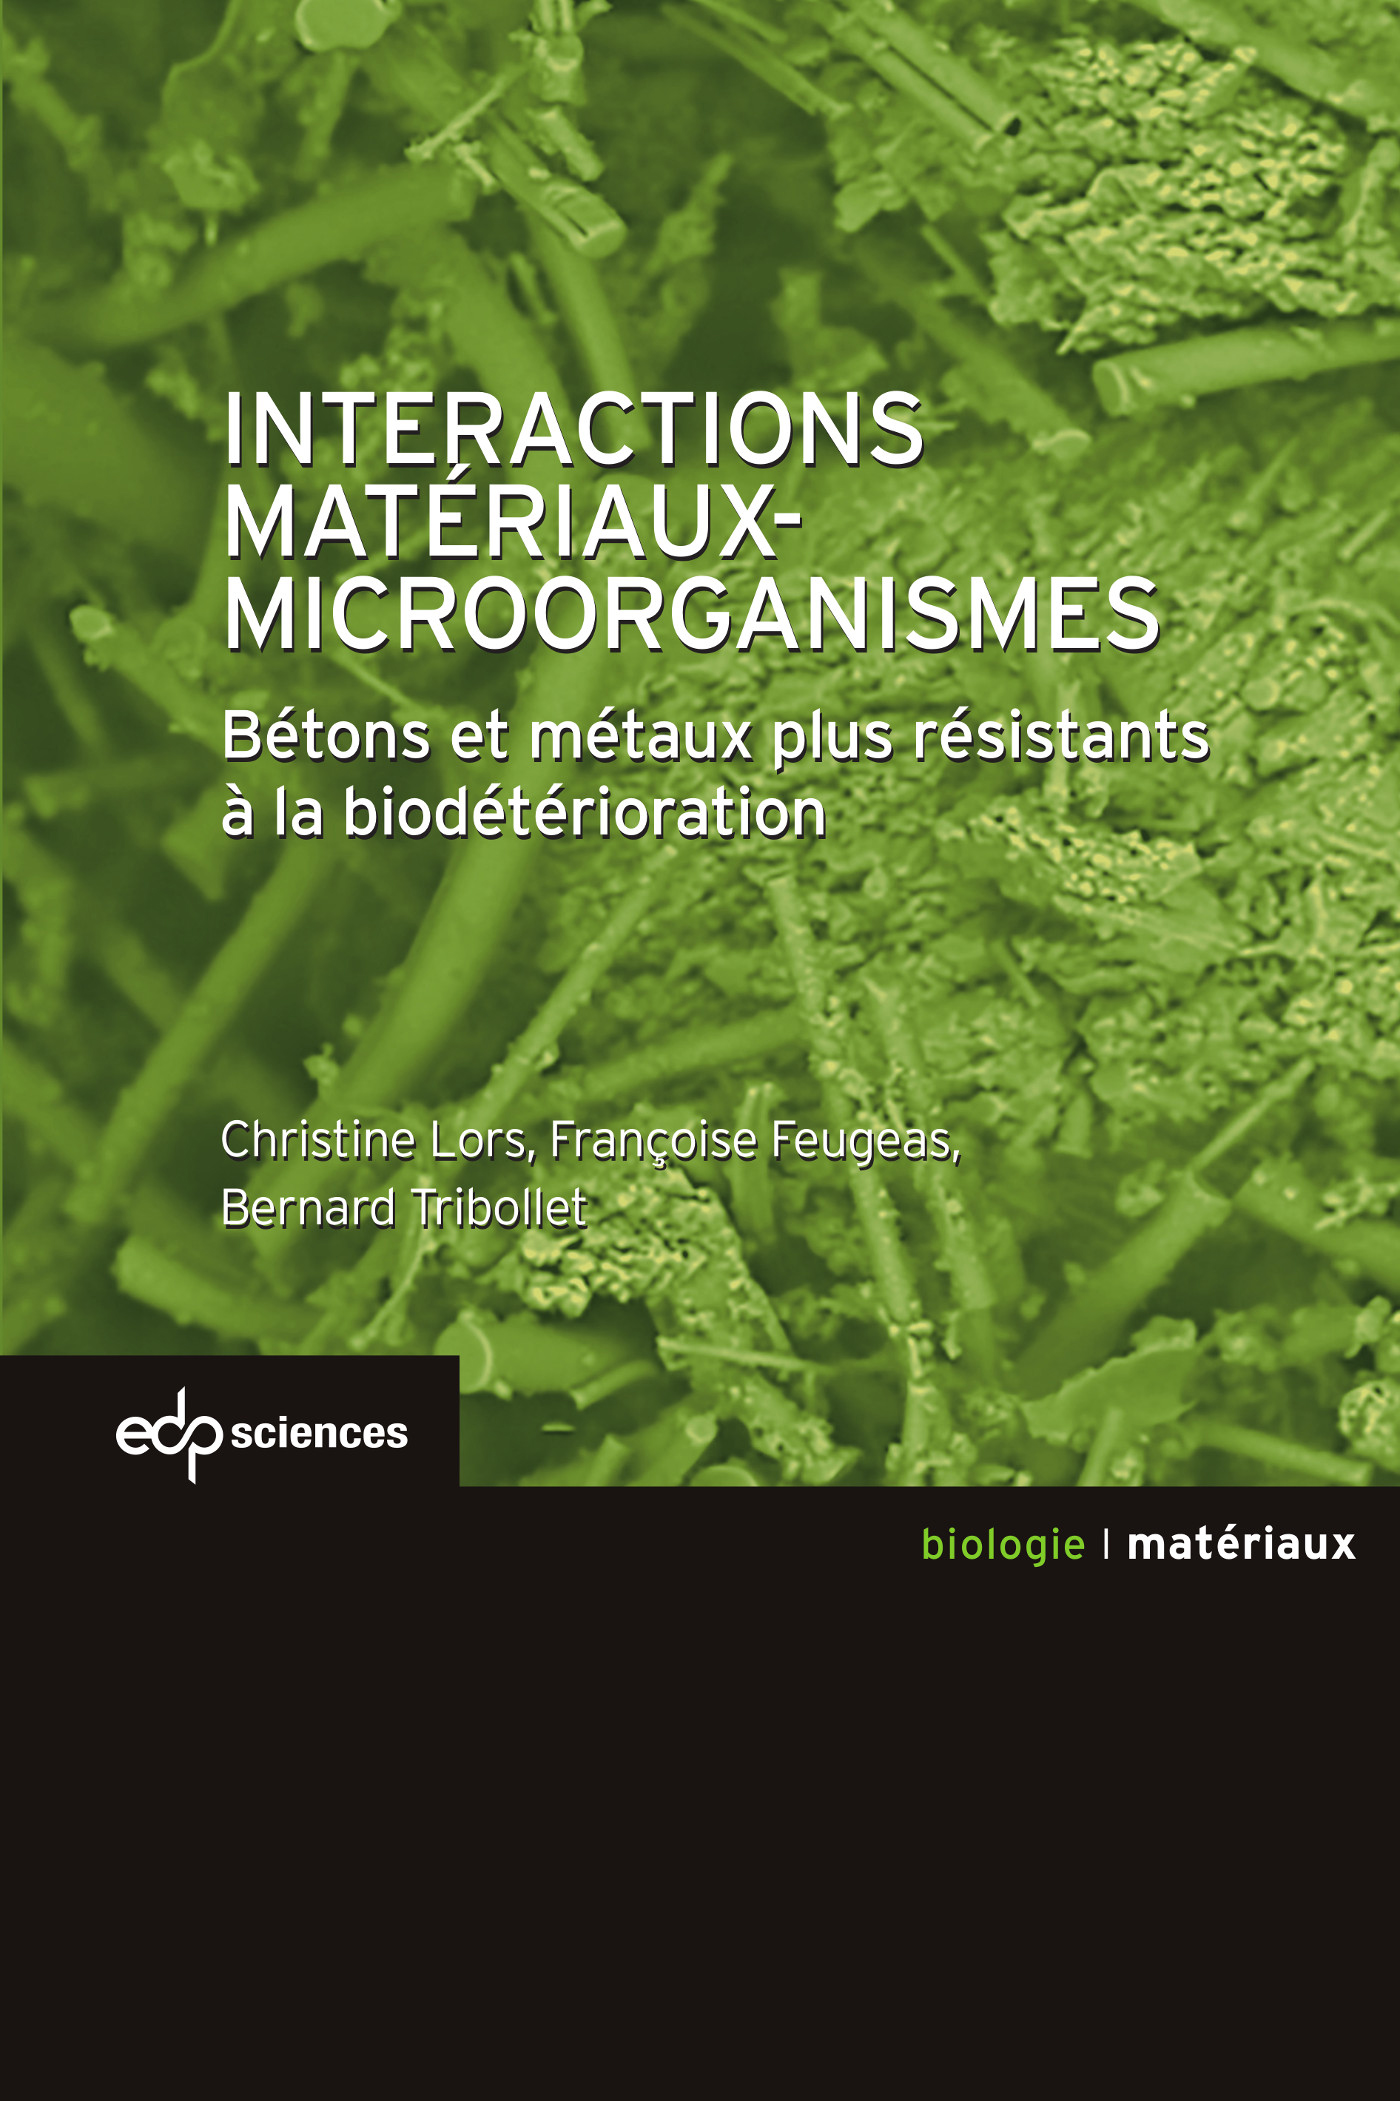 Interactions Matériaux-Microorganismes